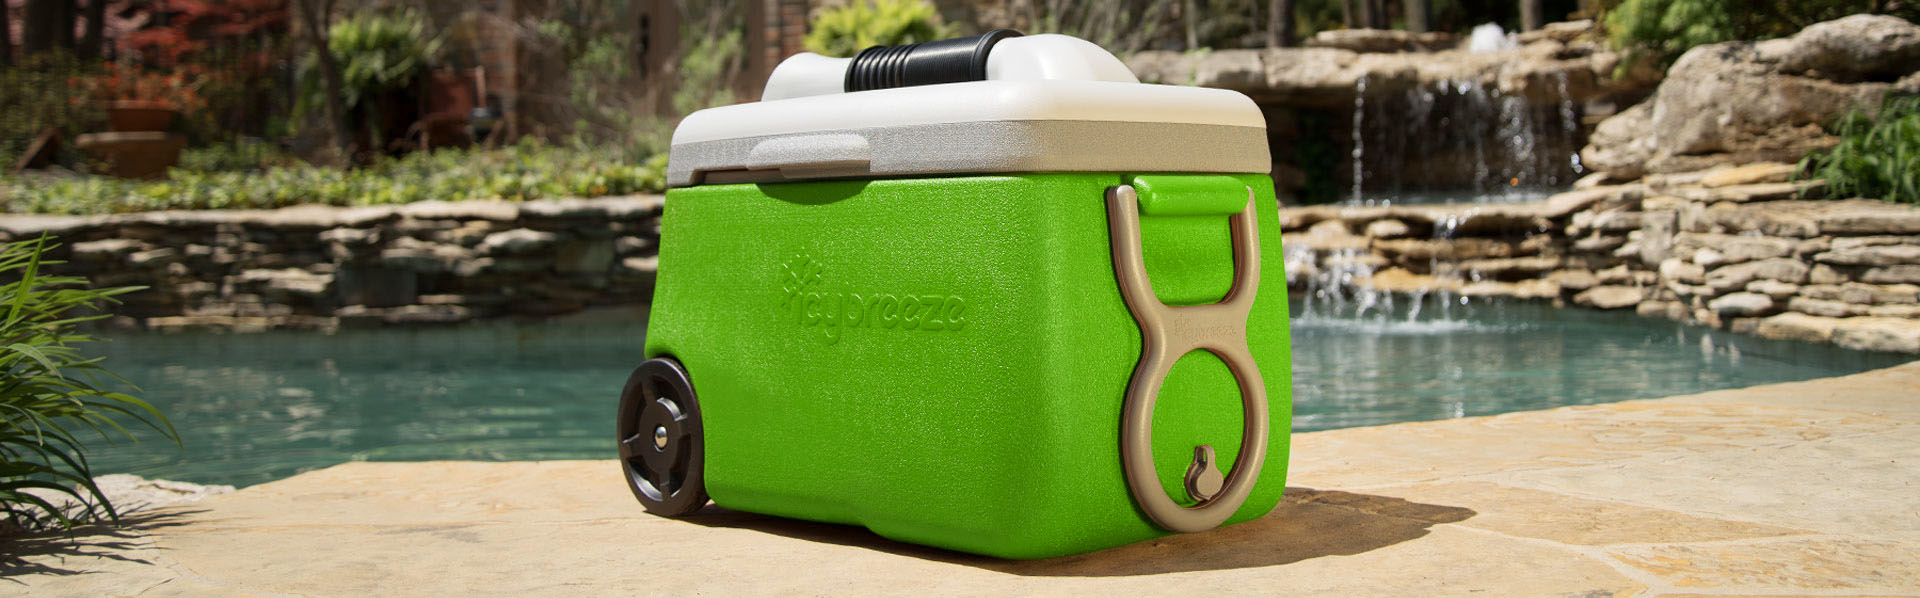 You can take the IcyBreeze portable air conditioner wherever you go.